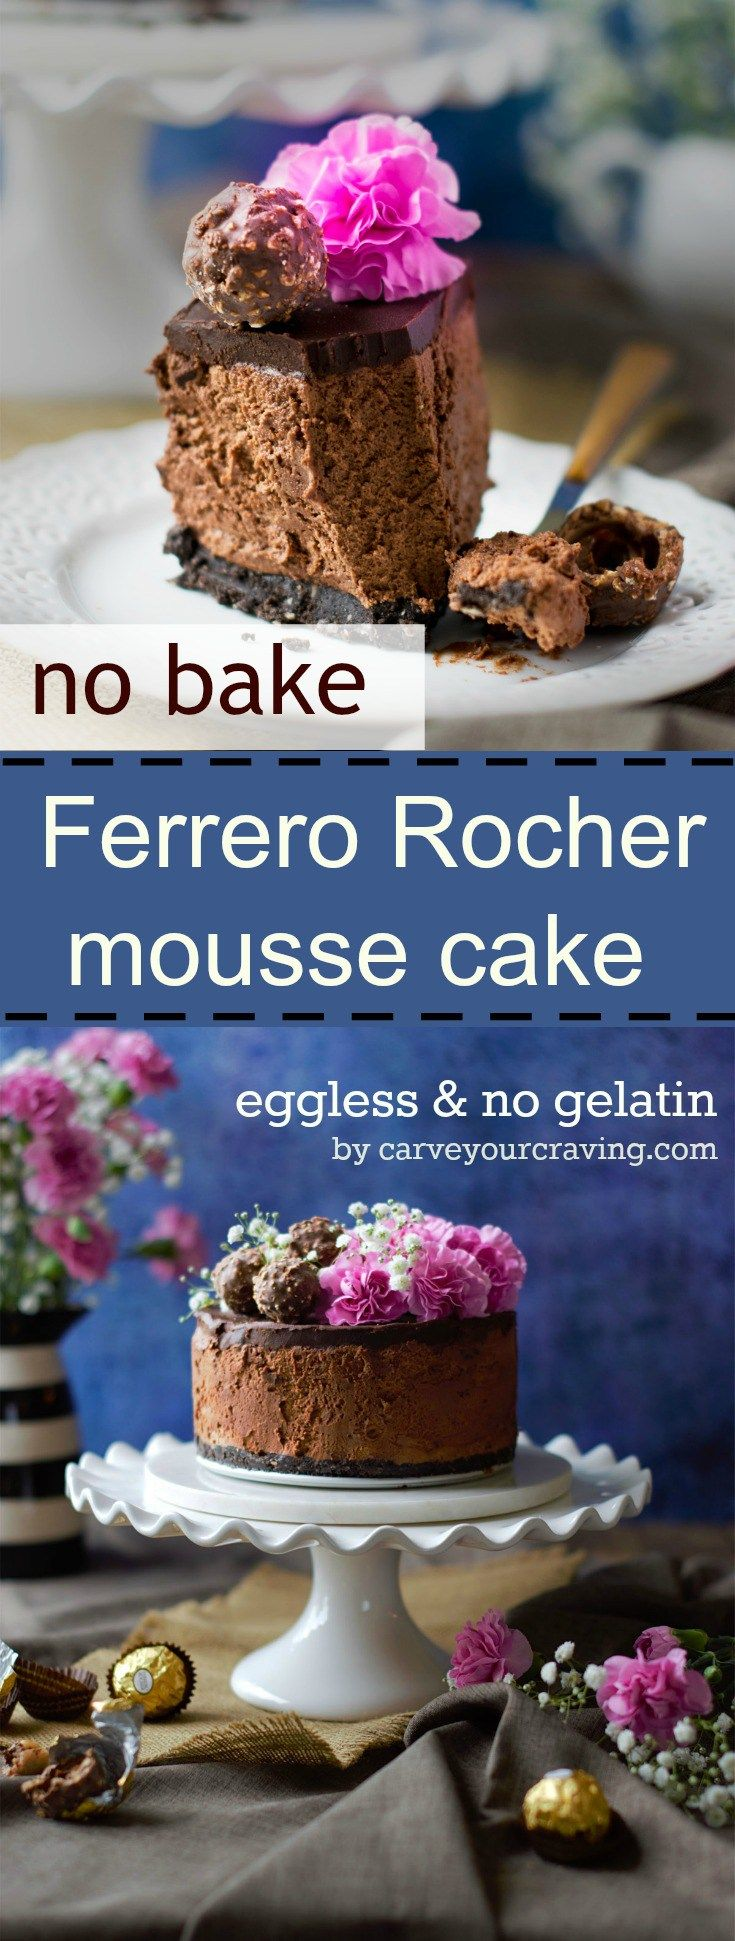 Impress your loved ones with this easy no bake ferrero rocher cake . It's so rich and decadent that you will love it. Eggless and gelatin…